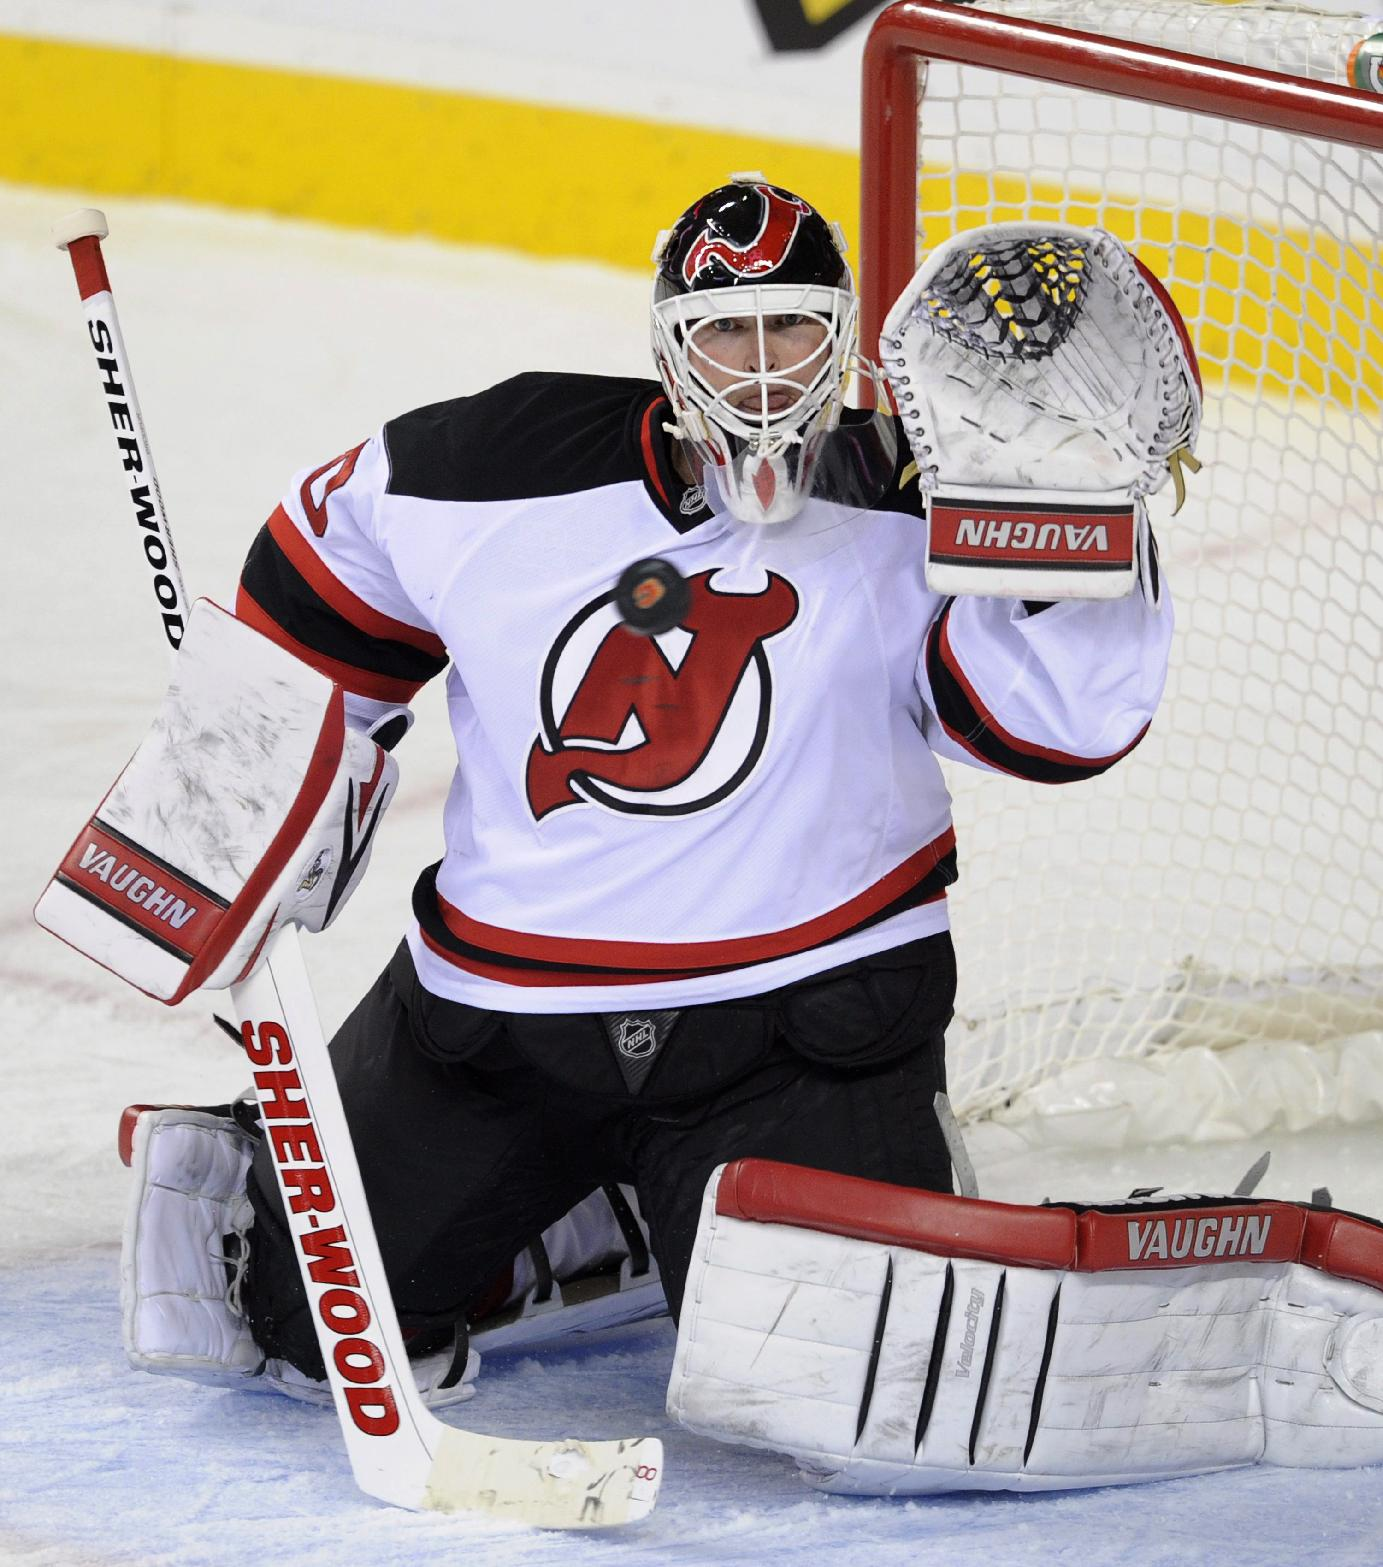 New Jersey Devils goalie Martin Brodeur makes a save on a Calgary Flames shot during the third period of an NHL hockey game Friday, Oct. 11, 2013, in Calgary, Alberta. The Flames won 3-2